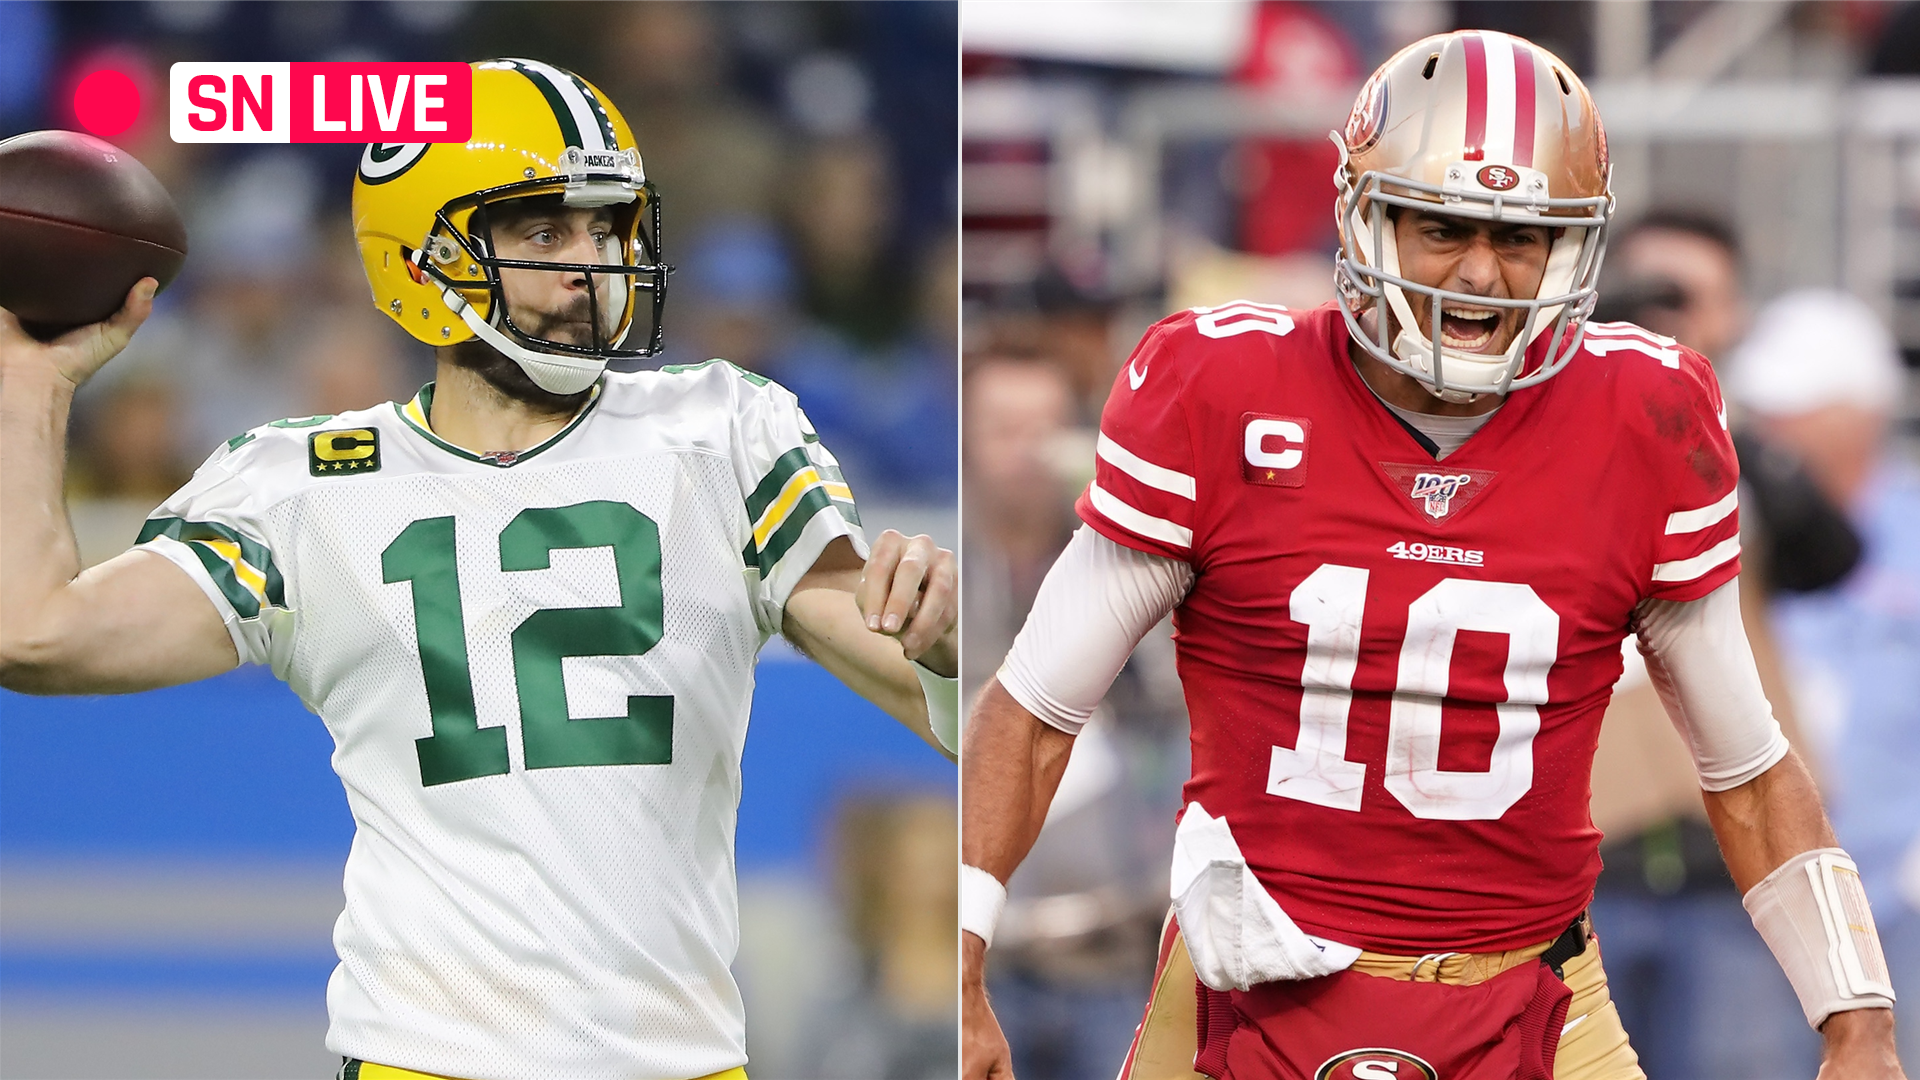 Packers vs. 49ers live score, updates, highlights from the